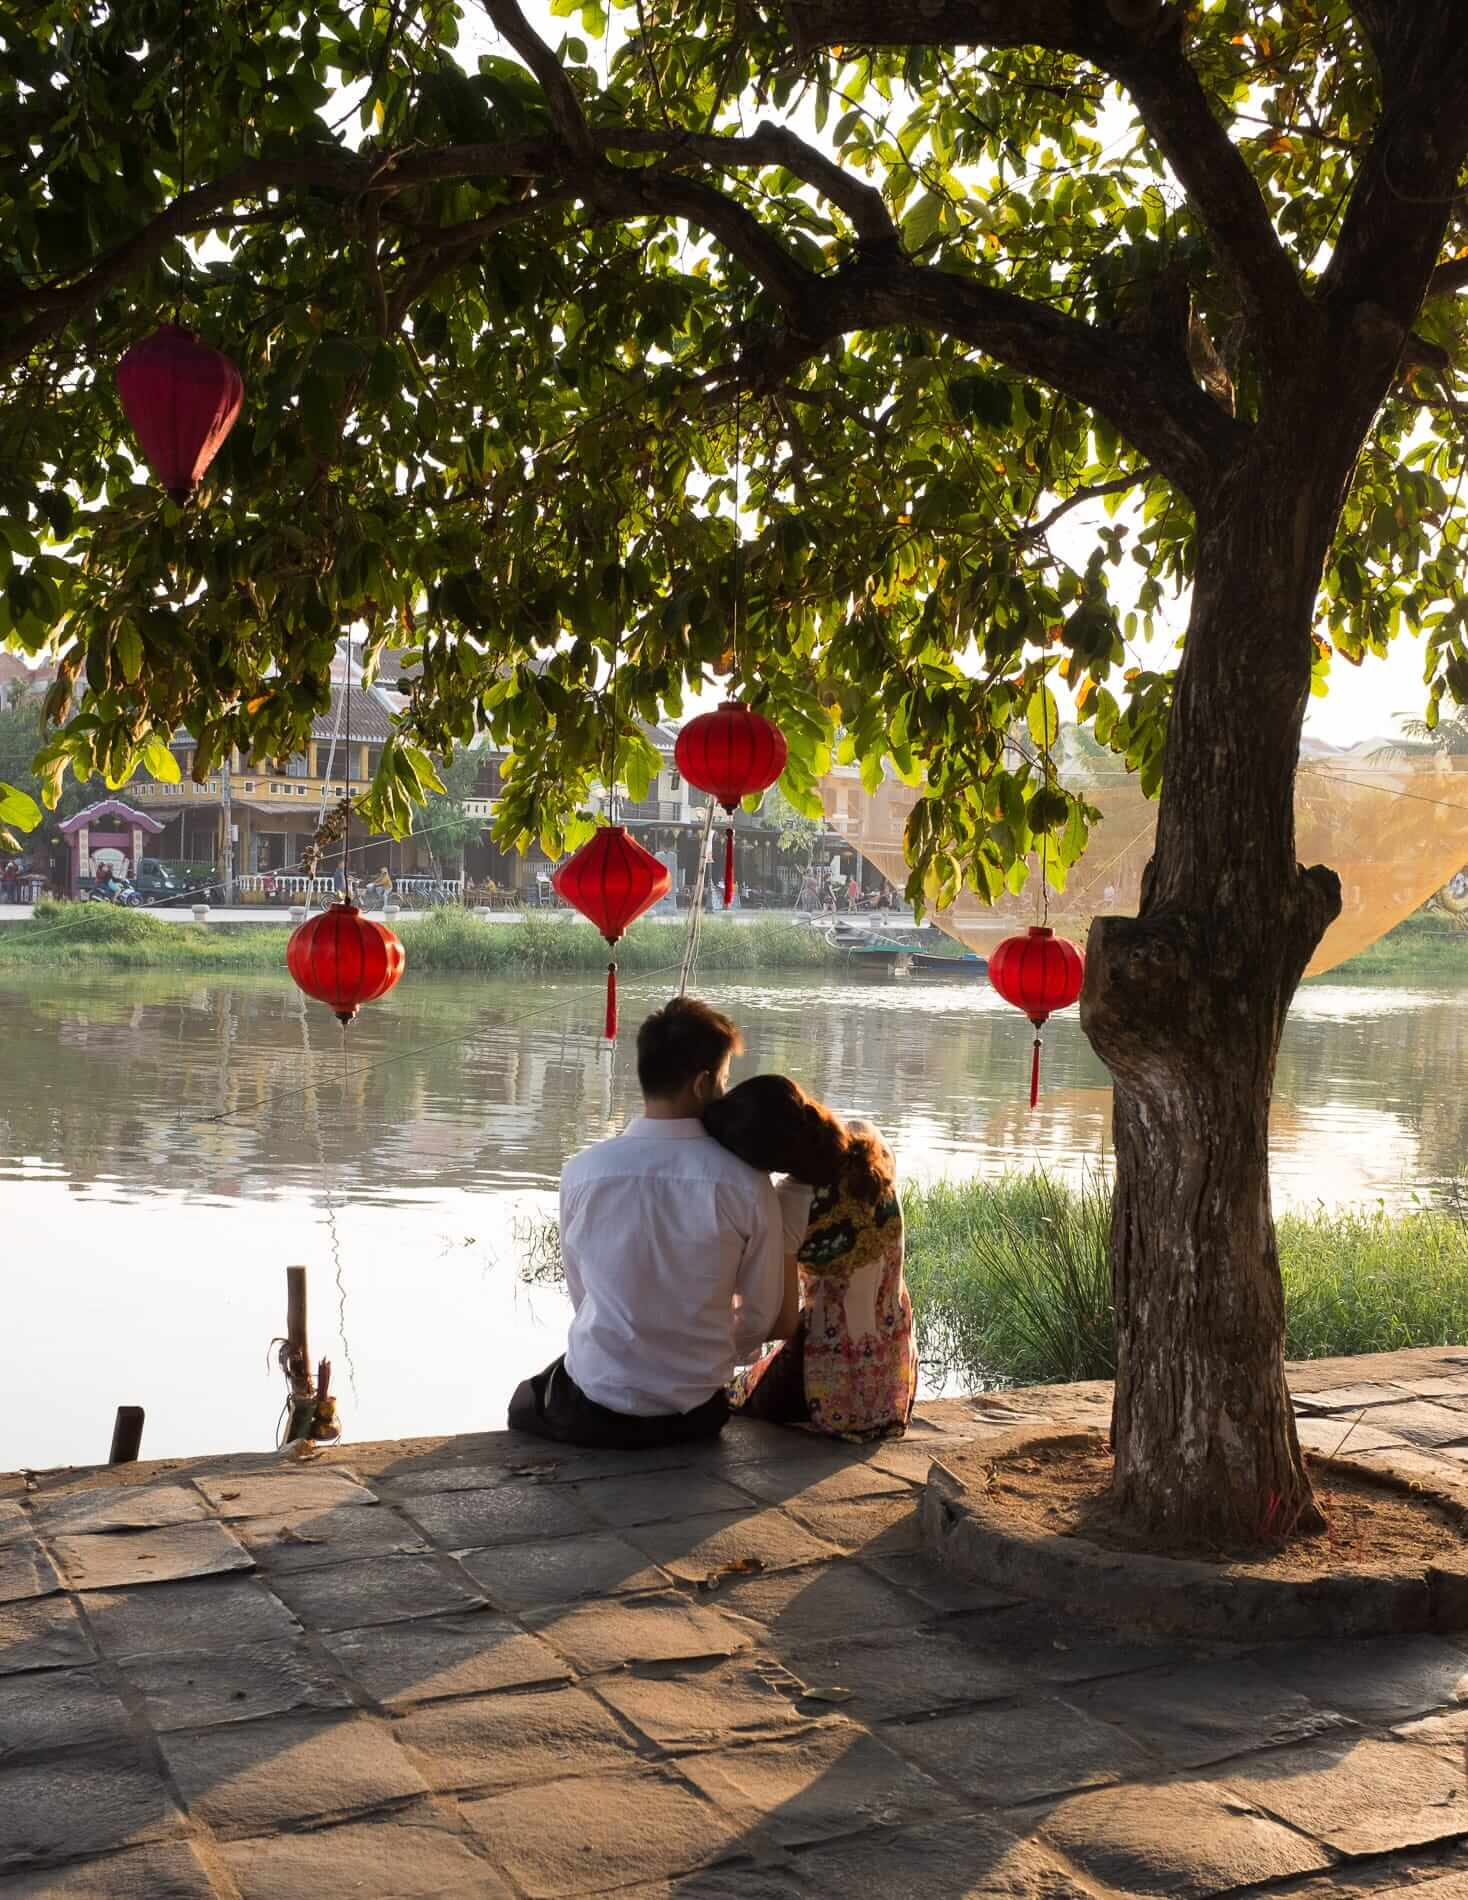 A couple spend the day under a tree